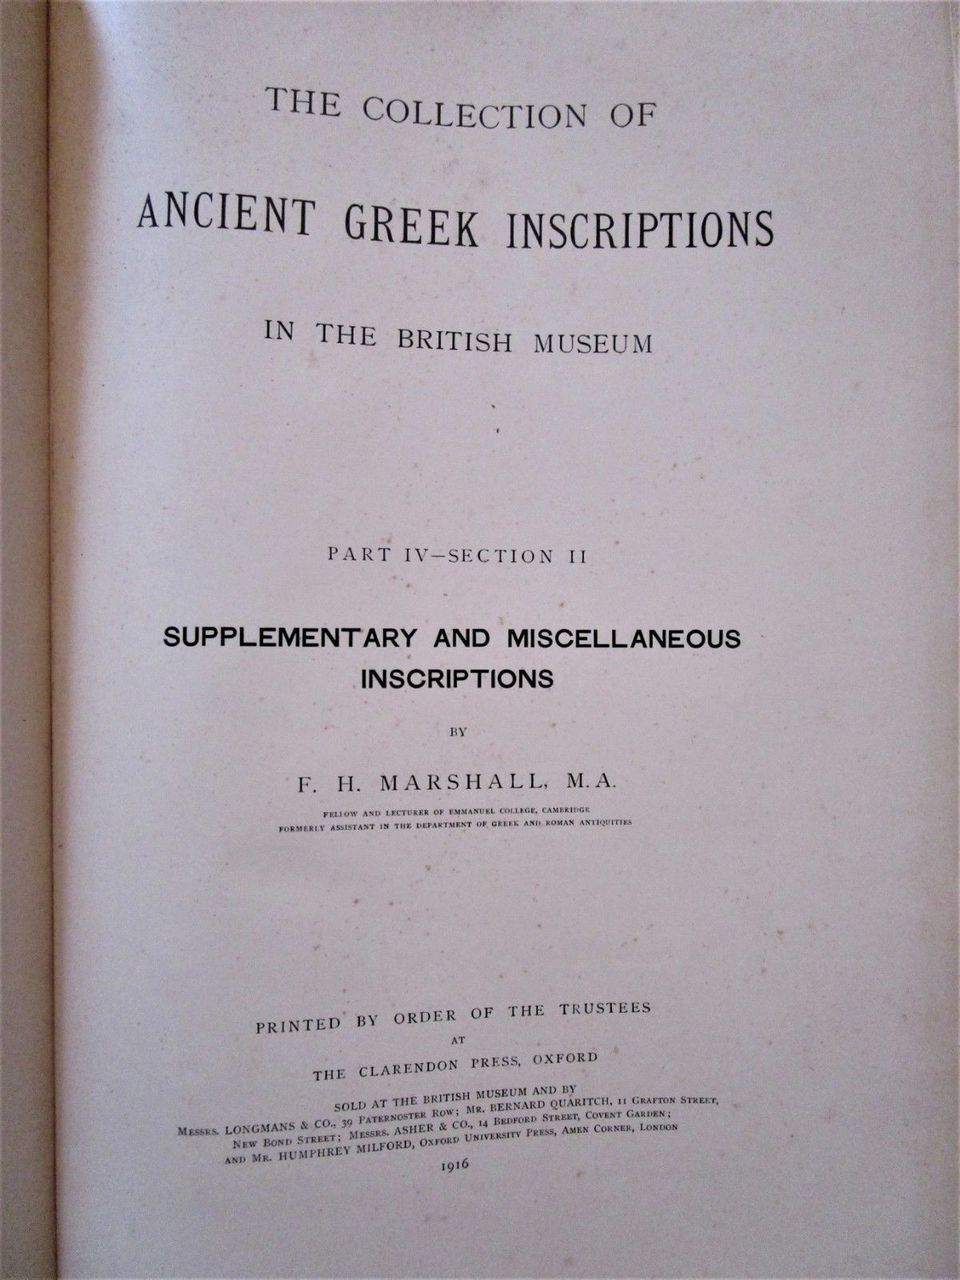 ANCIENT GREEK INSCRIPTIONS IN THE BRITISH MUSEUM, CT Newton c.1900 [6vols] XL HB